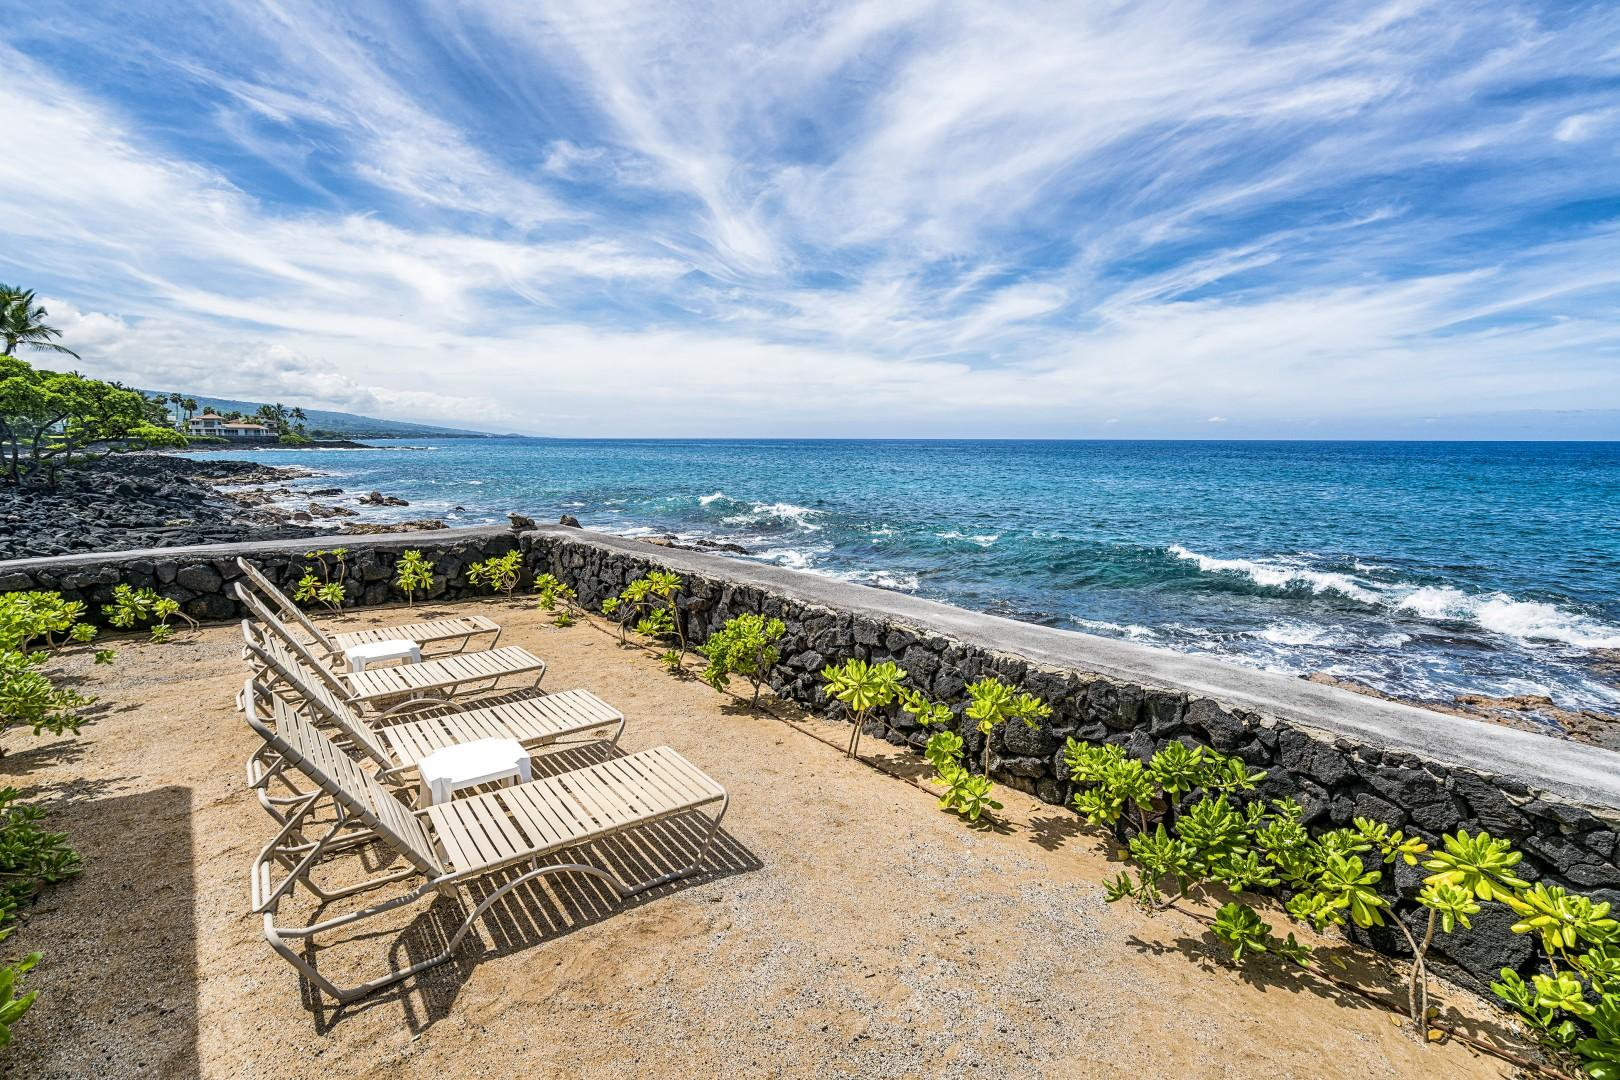 Sit by the oceans edge and take in that Kona sun